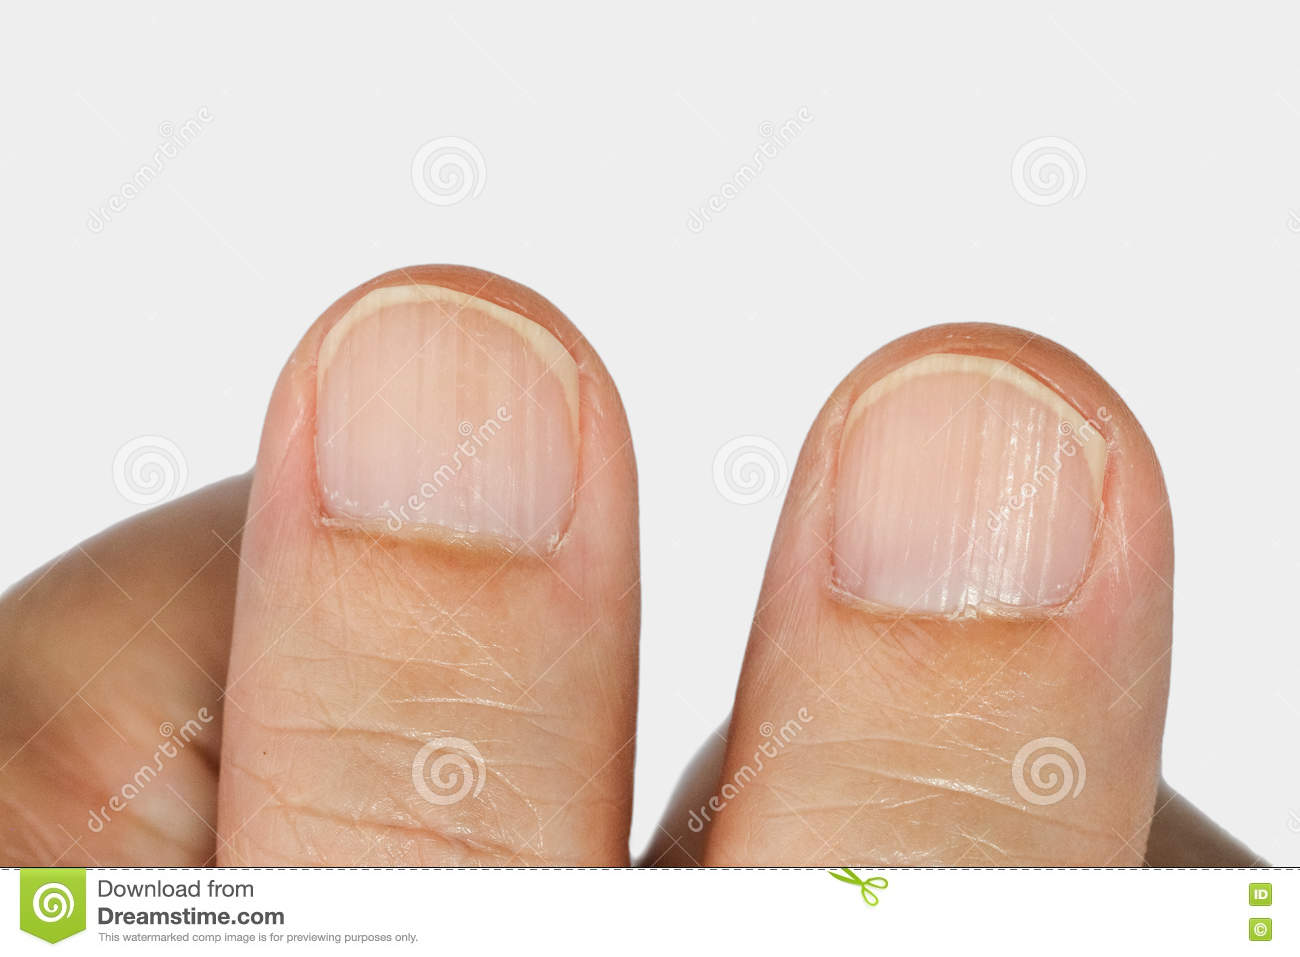 Vertical Ridges On The Fingernails Stock Image - Image of nutrition ...